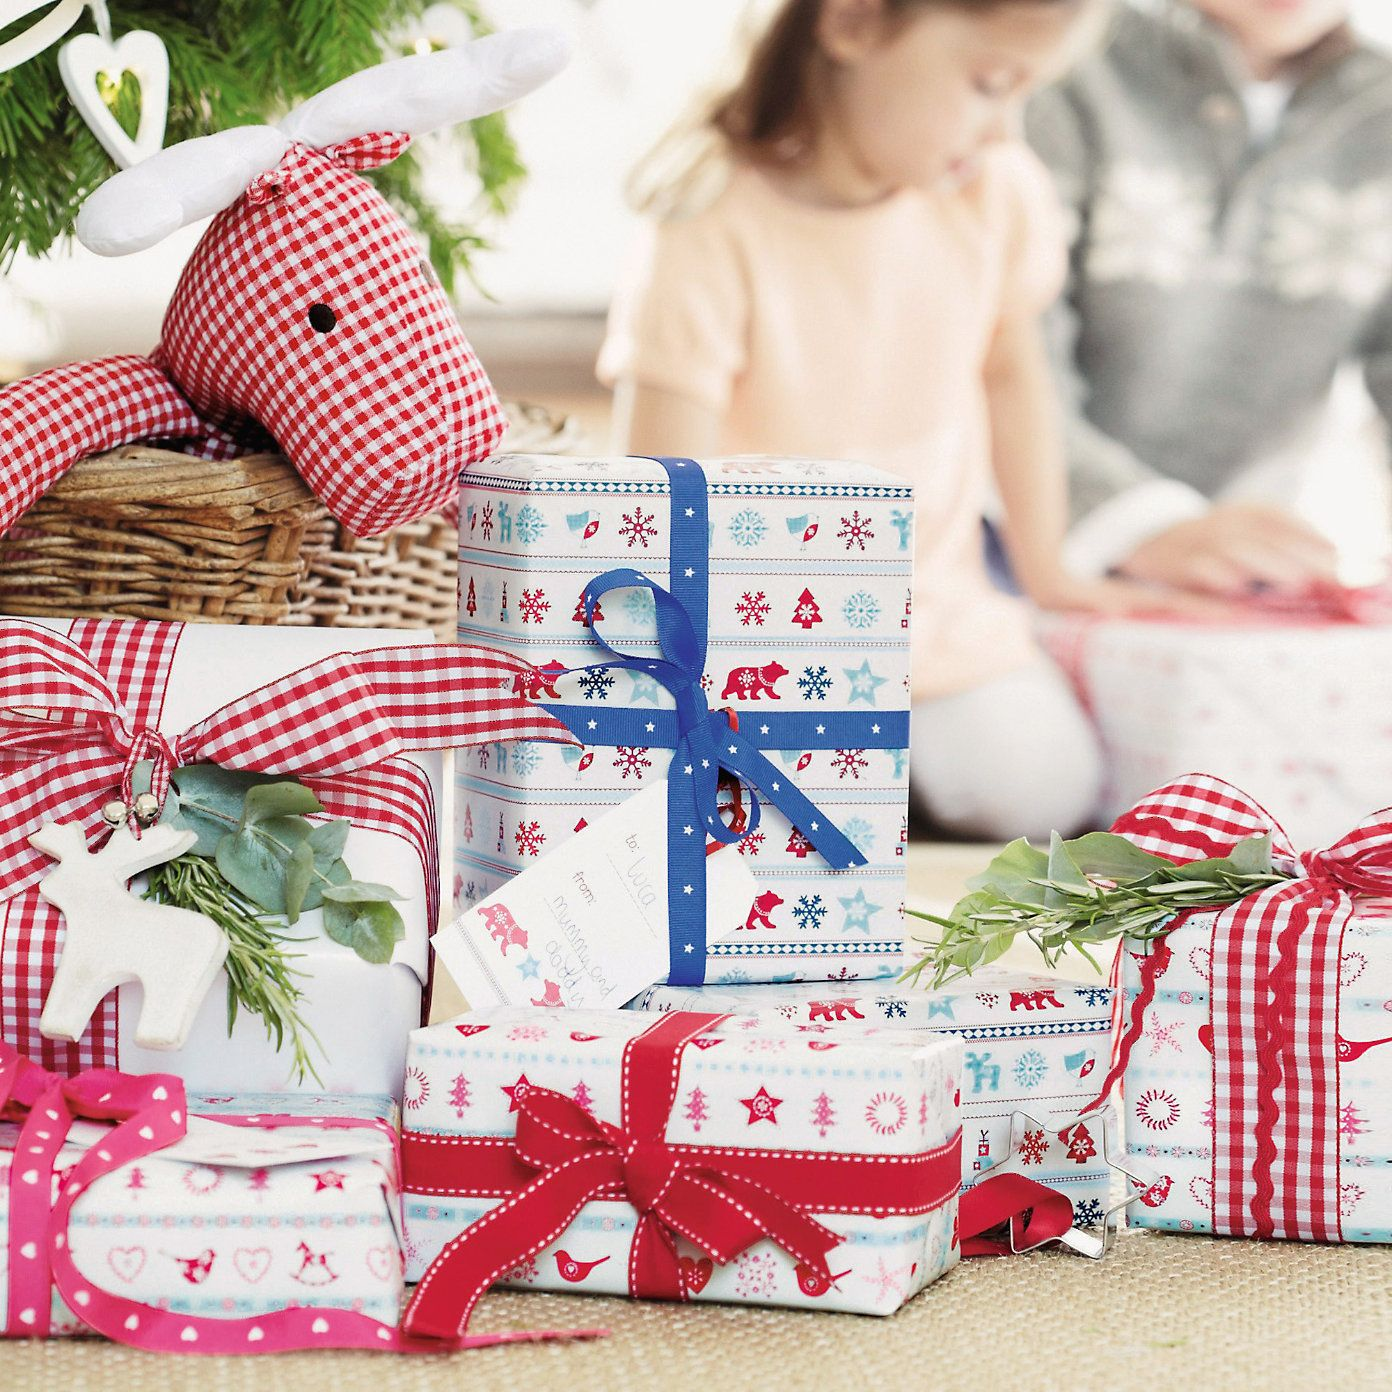 The White Company Wrapping Giftschristmas